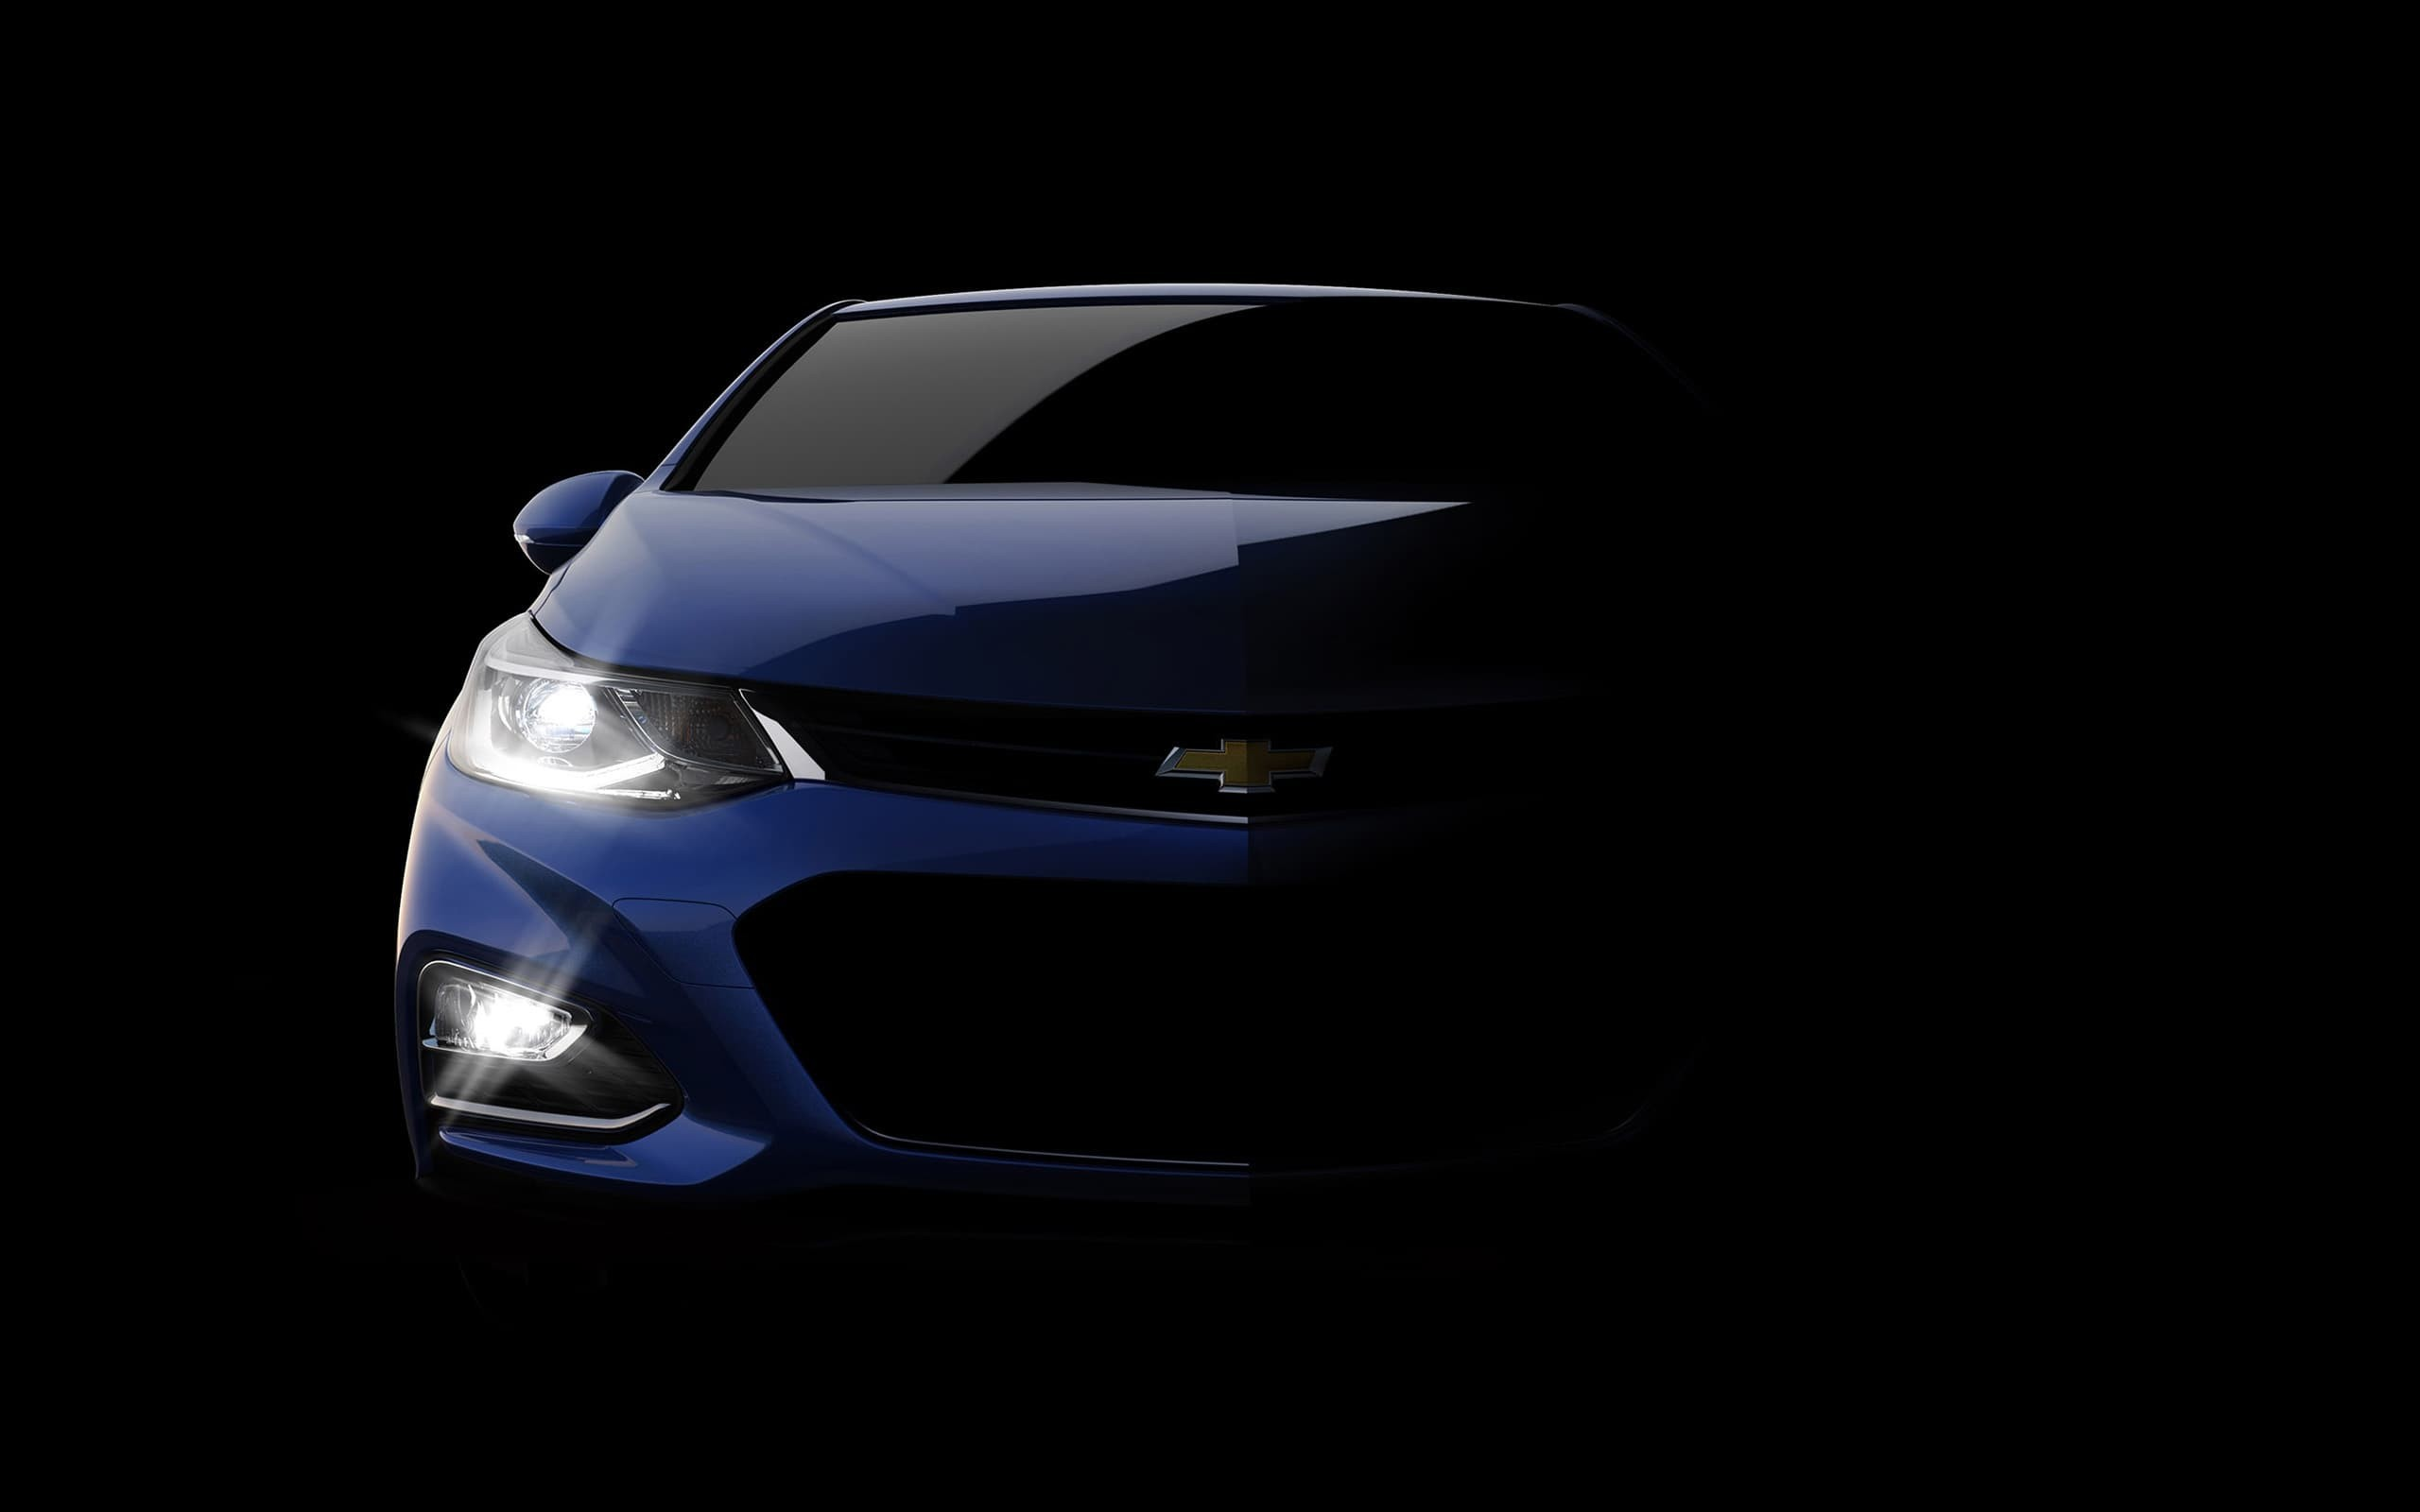 2016 Chevrolet Cruze widescreen. Chevrolet Cruze 2008 sedan HD Wallpapers